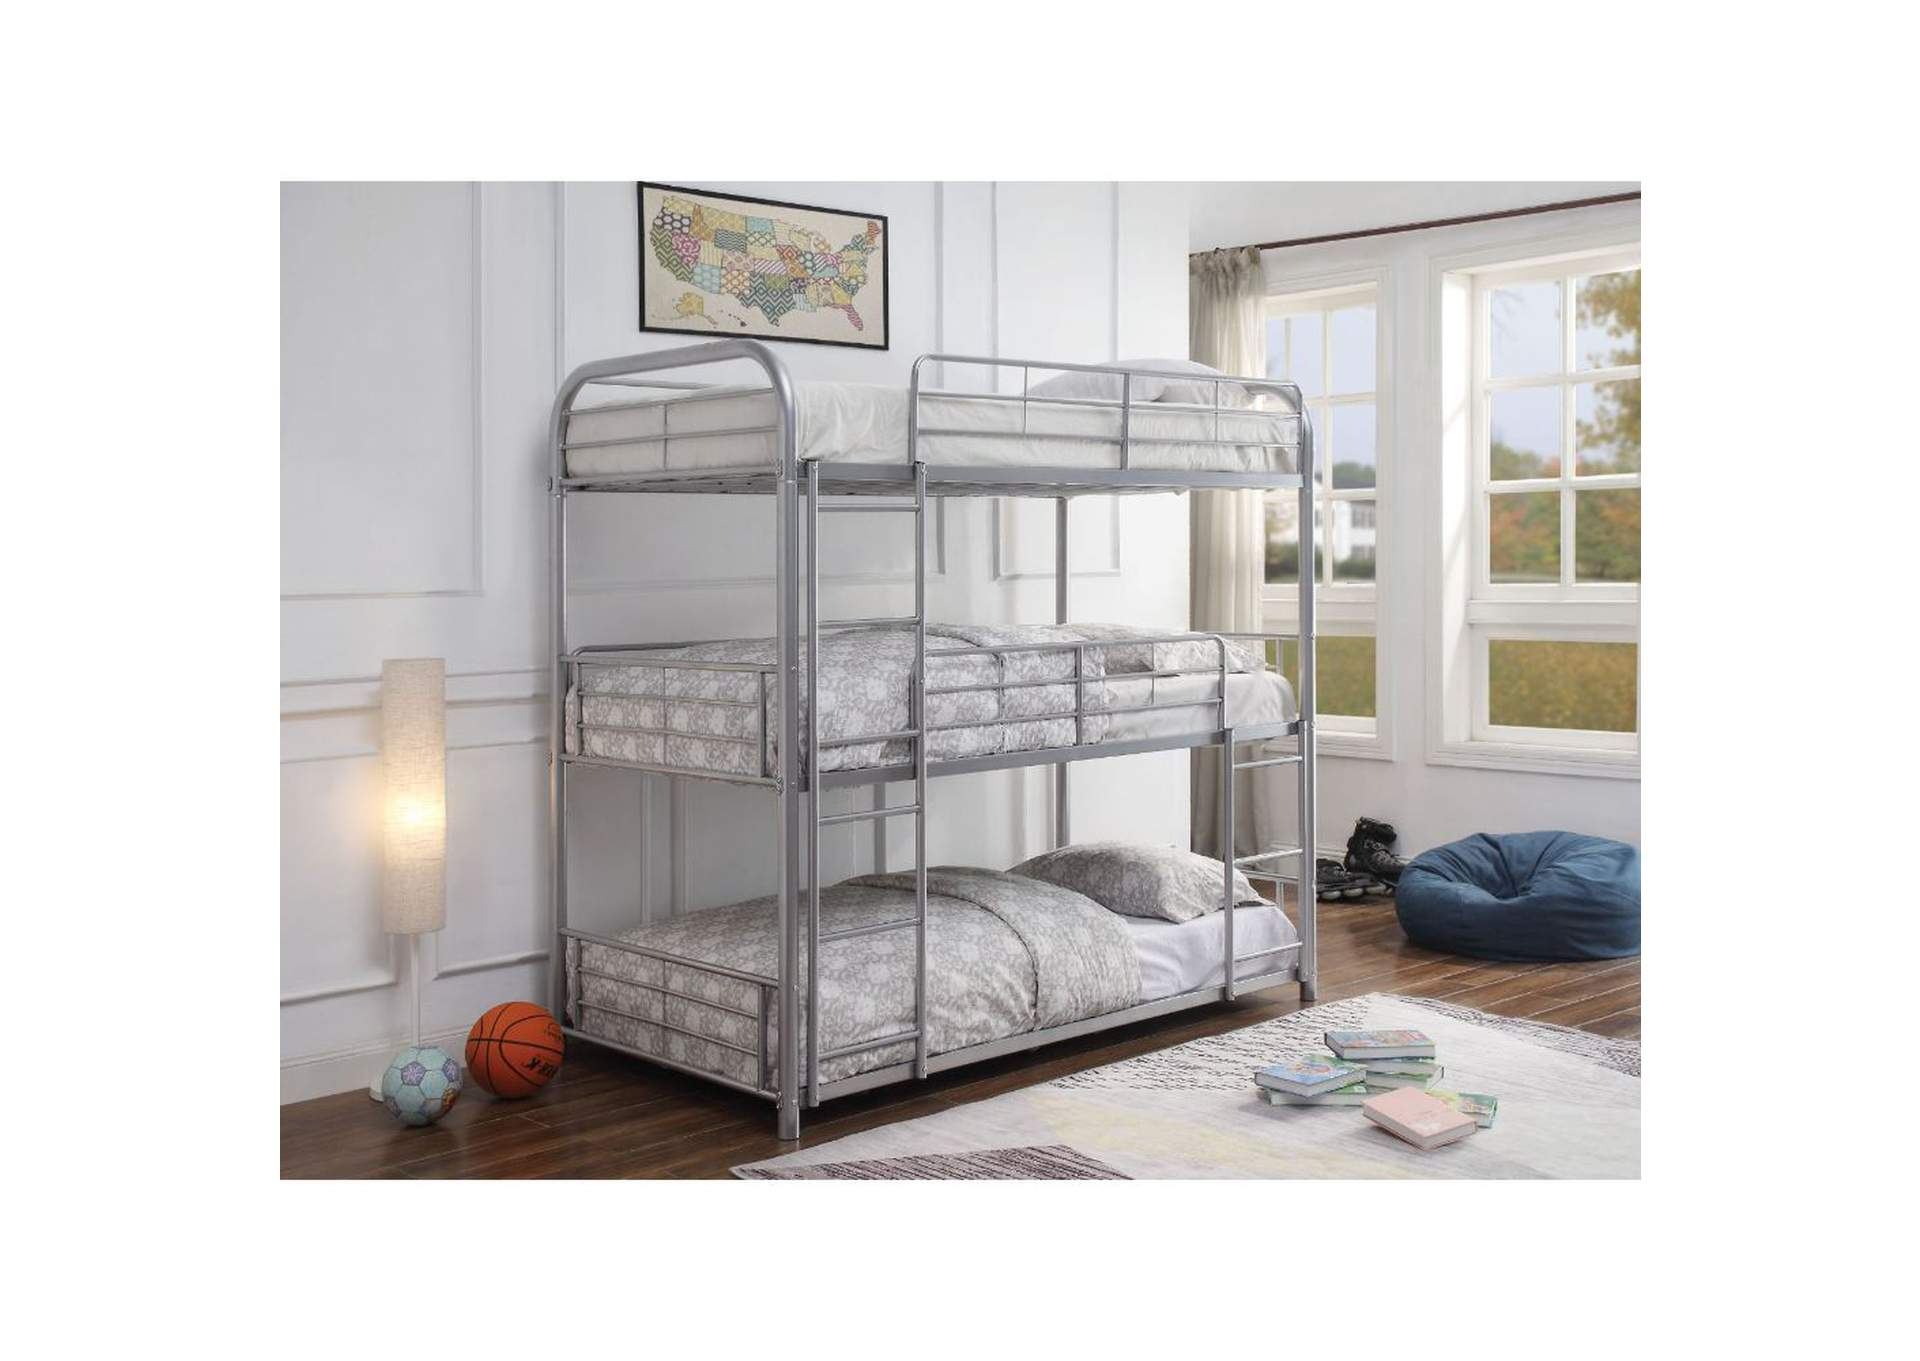 Cairo Silver Bunk Bed - Triple Twin,Acme